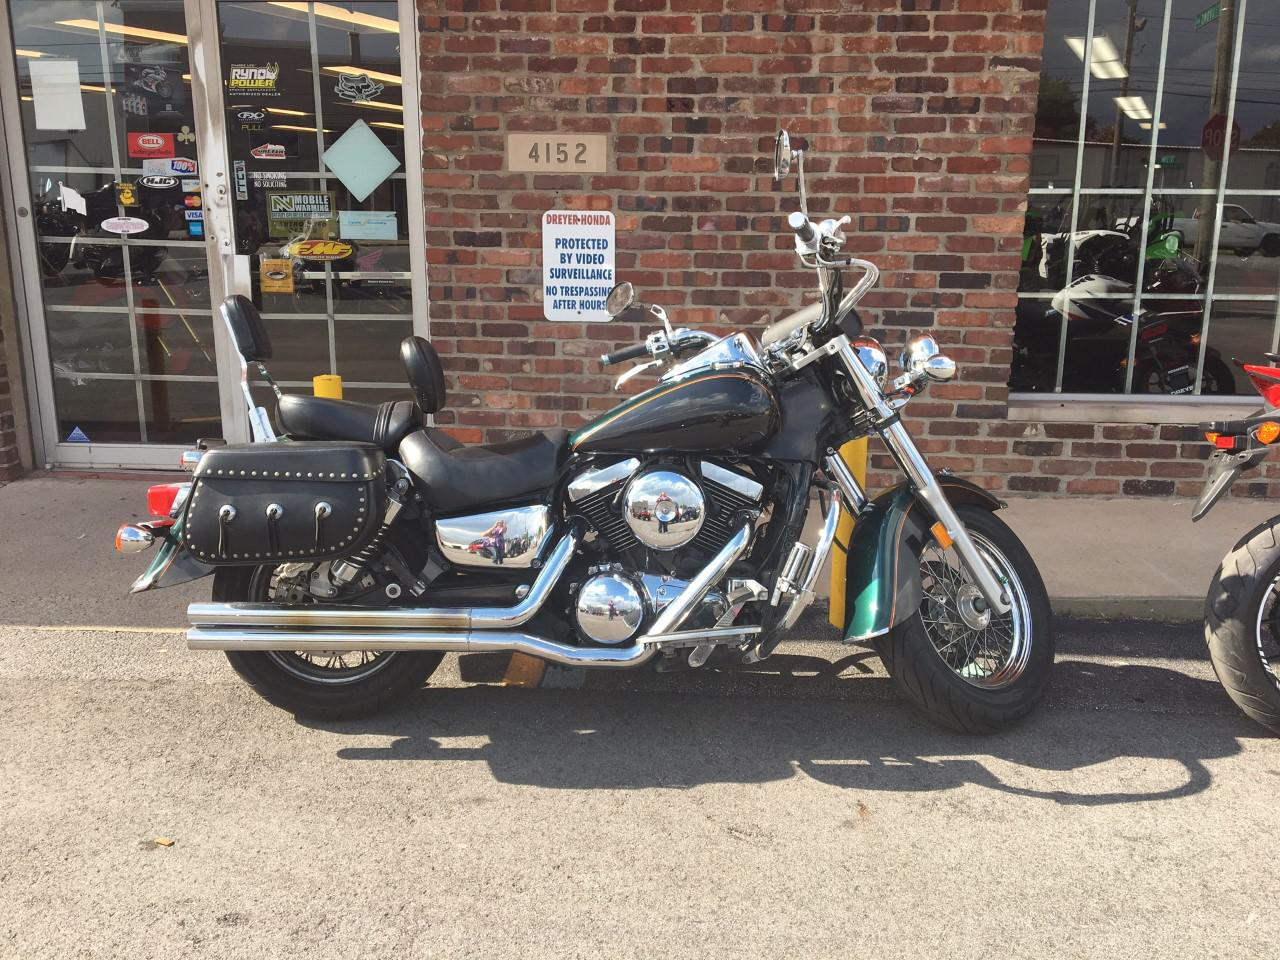 2002 kawasaki vn1500 classic for sale in indianapolis, in | dreyer